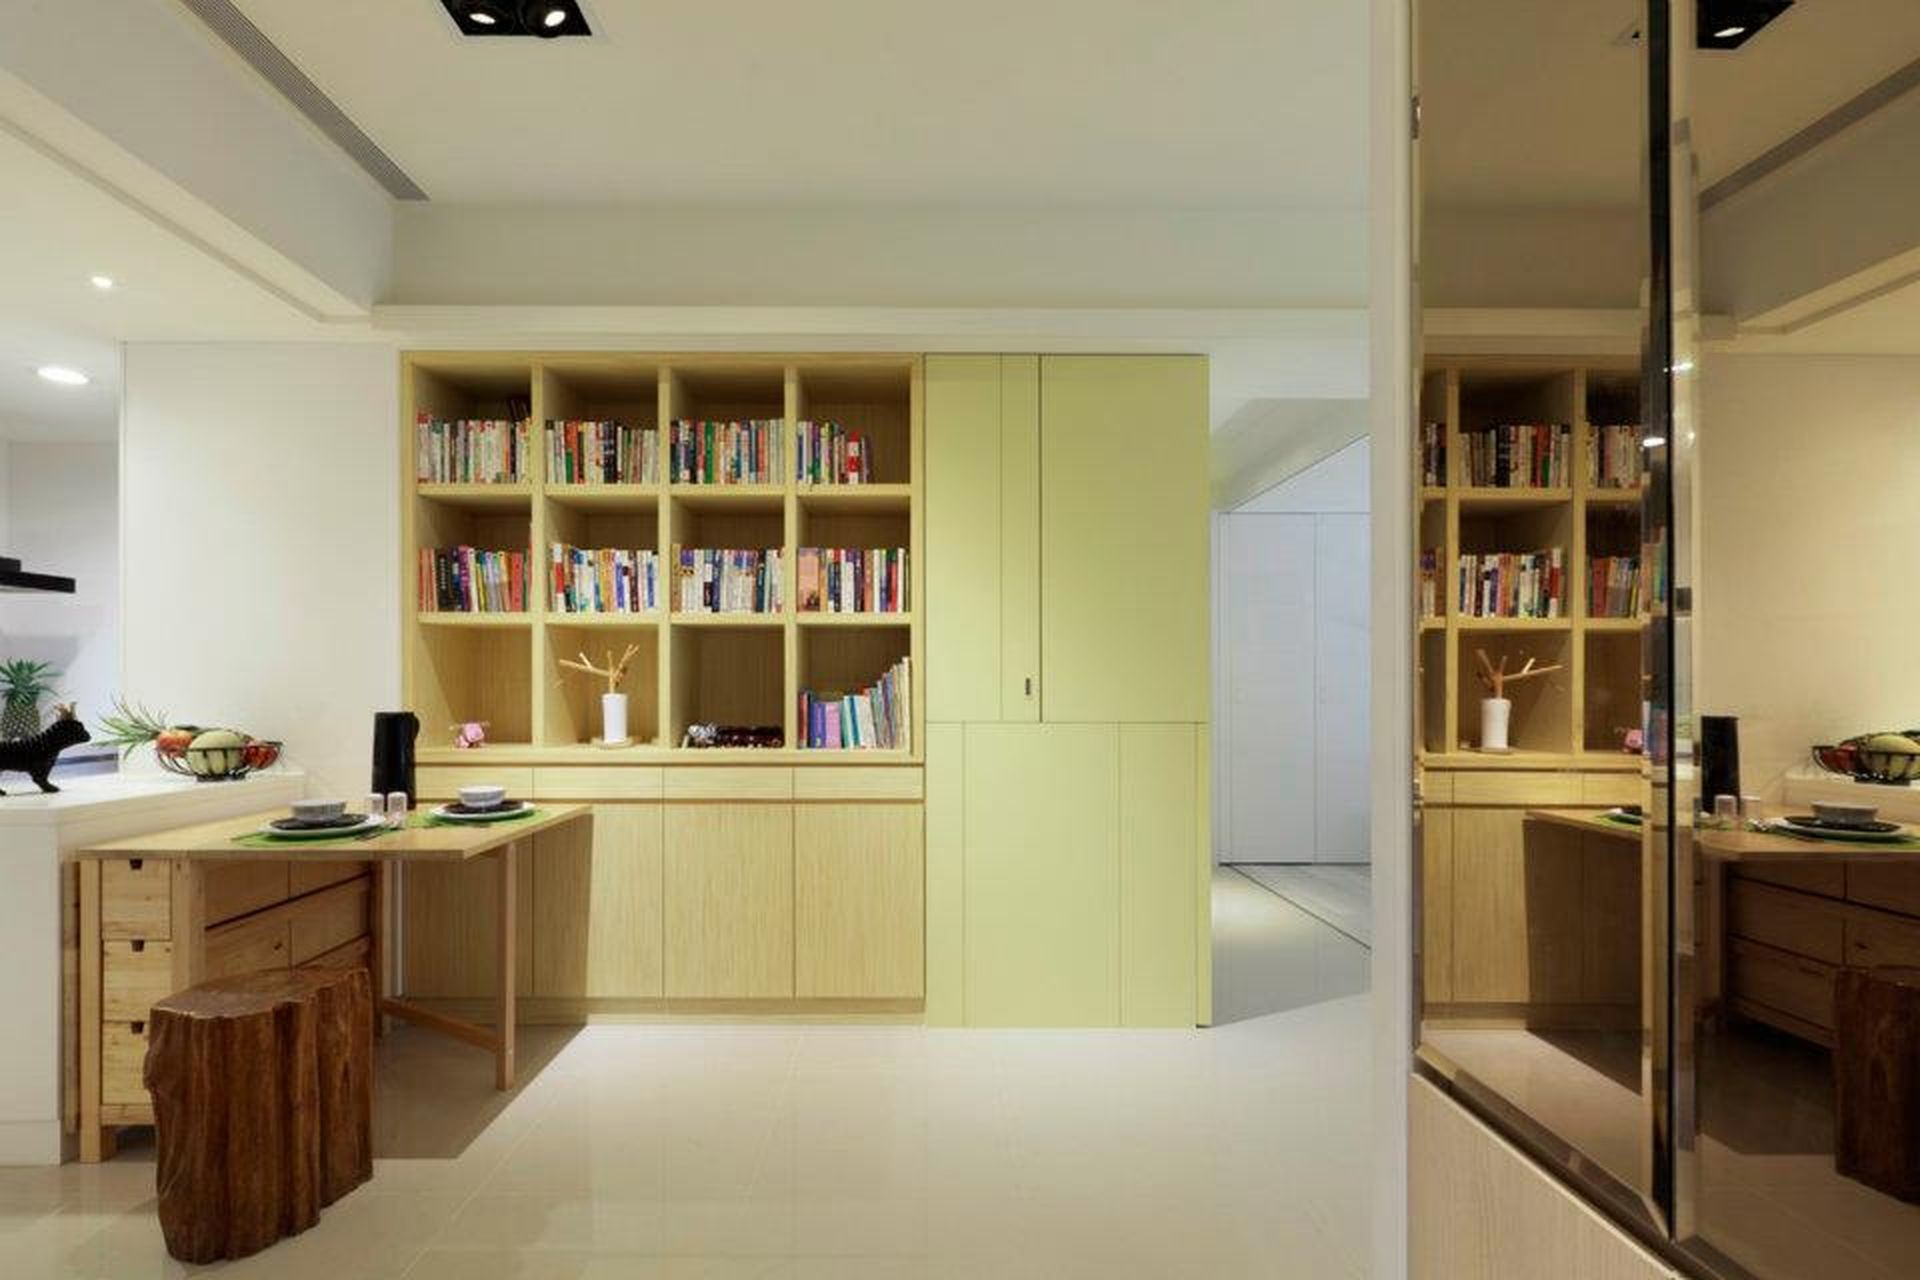 Study room,Others